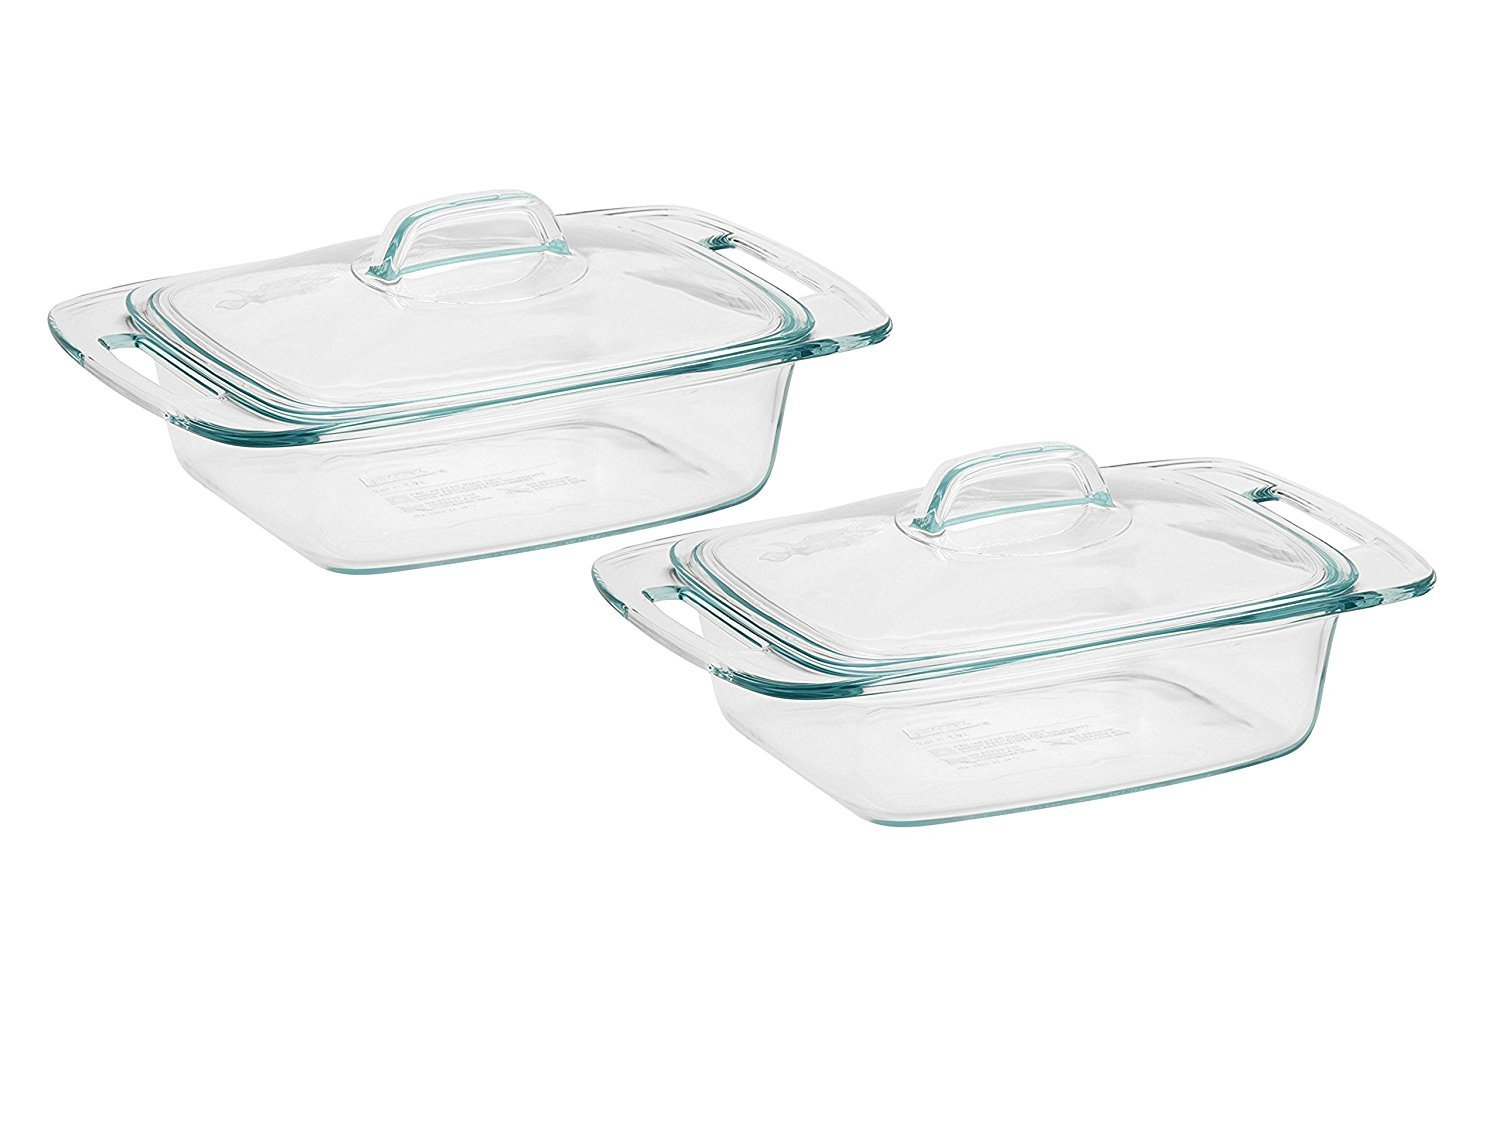 Set of 2 Pyrex Easy Grab 2-qt Casserole bundled by Maven Gifts by Pyrex